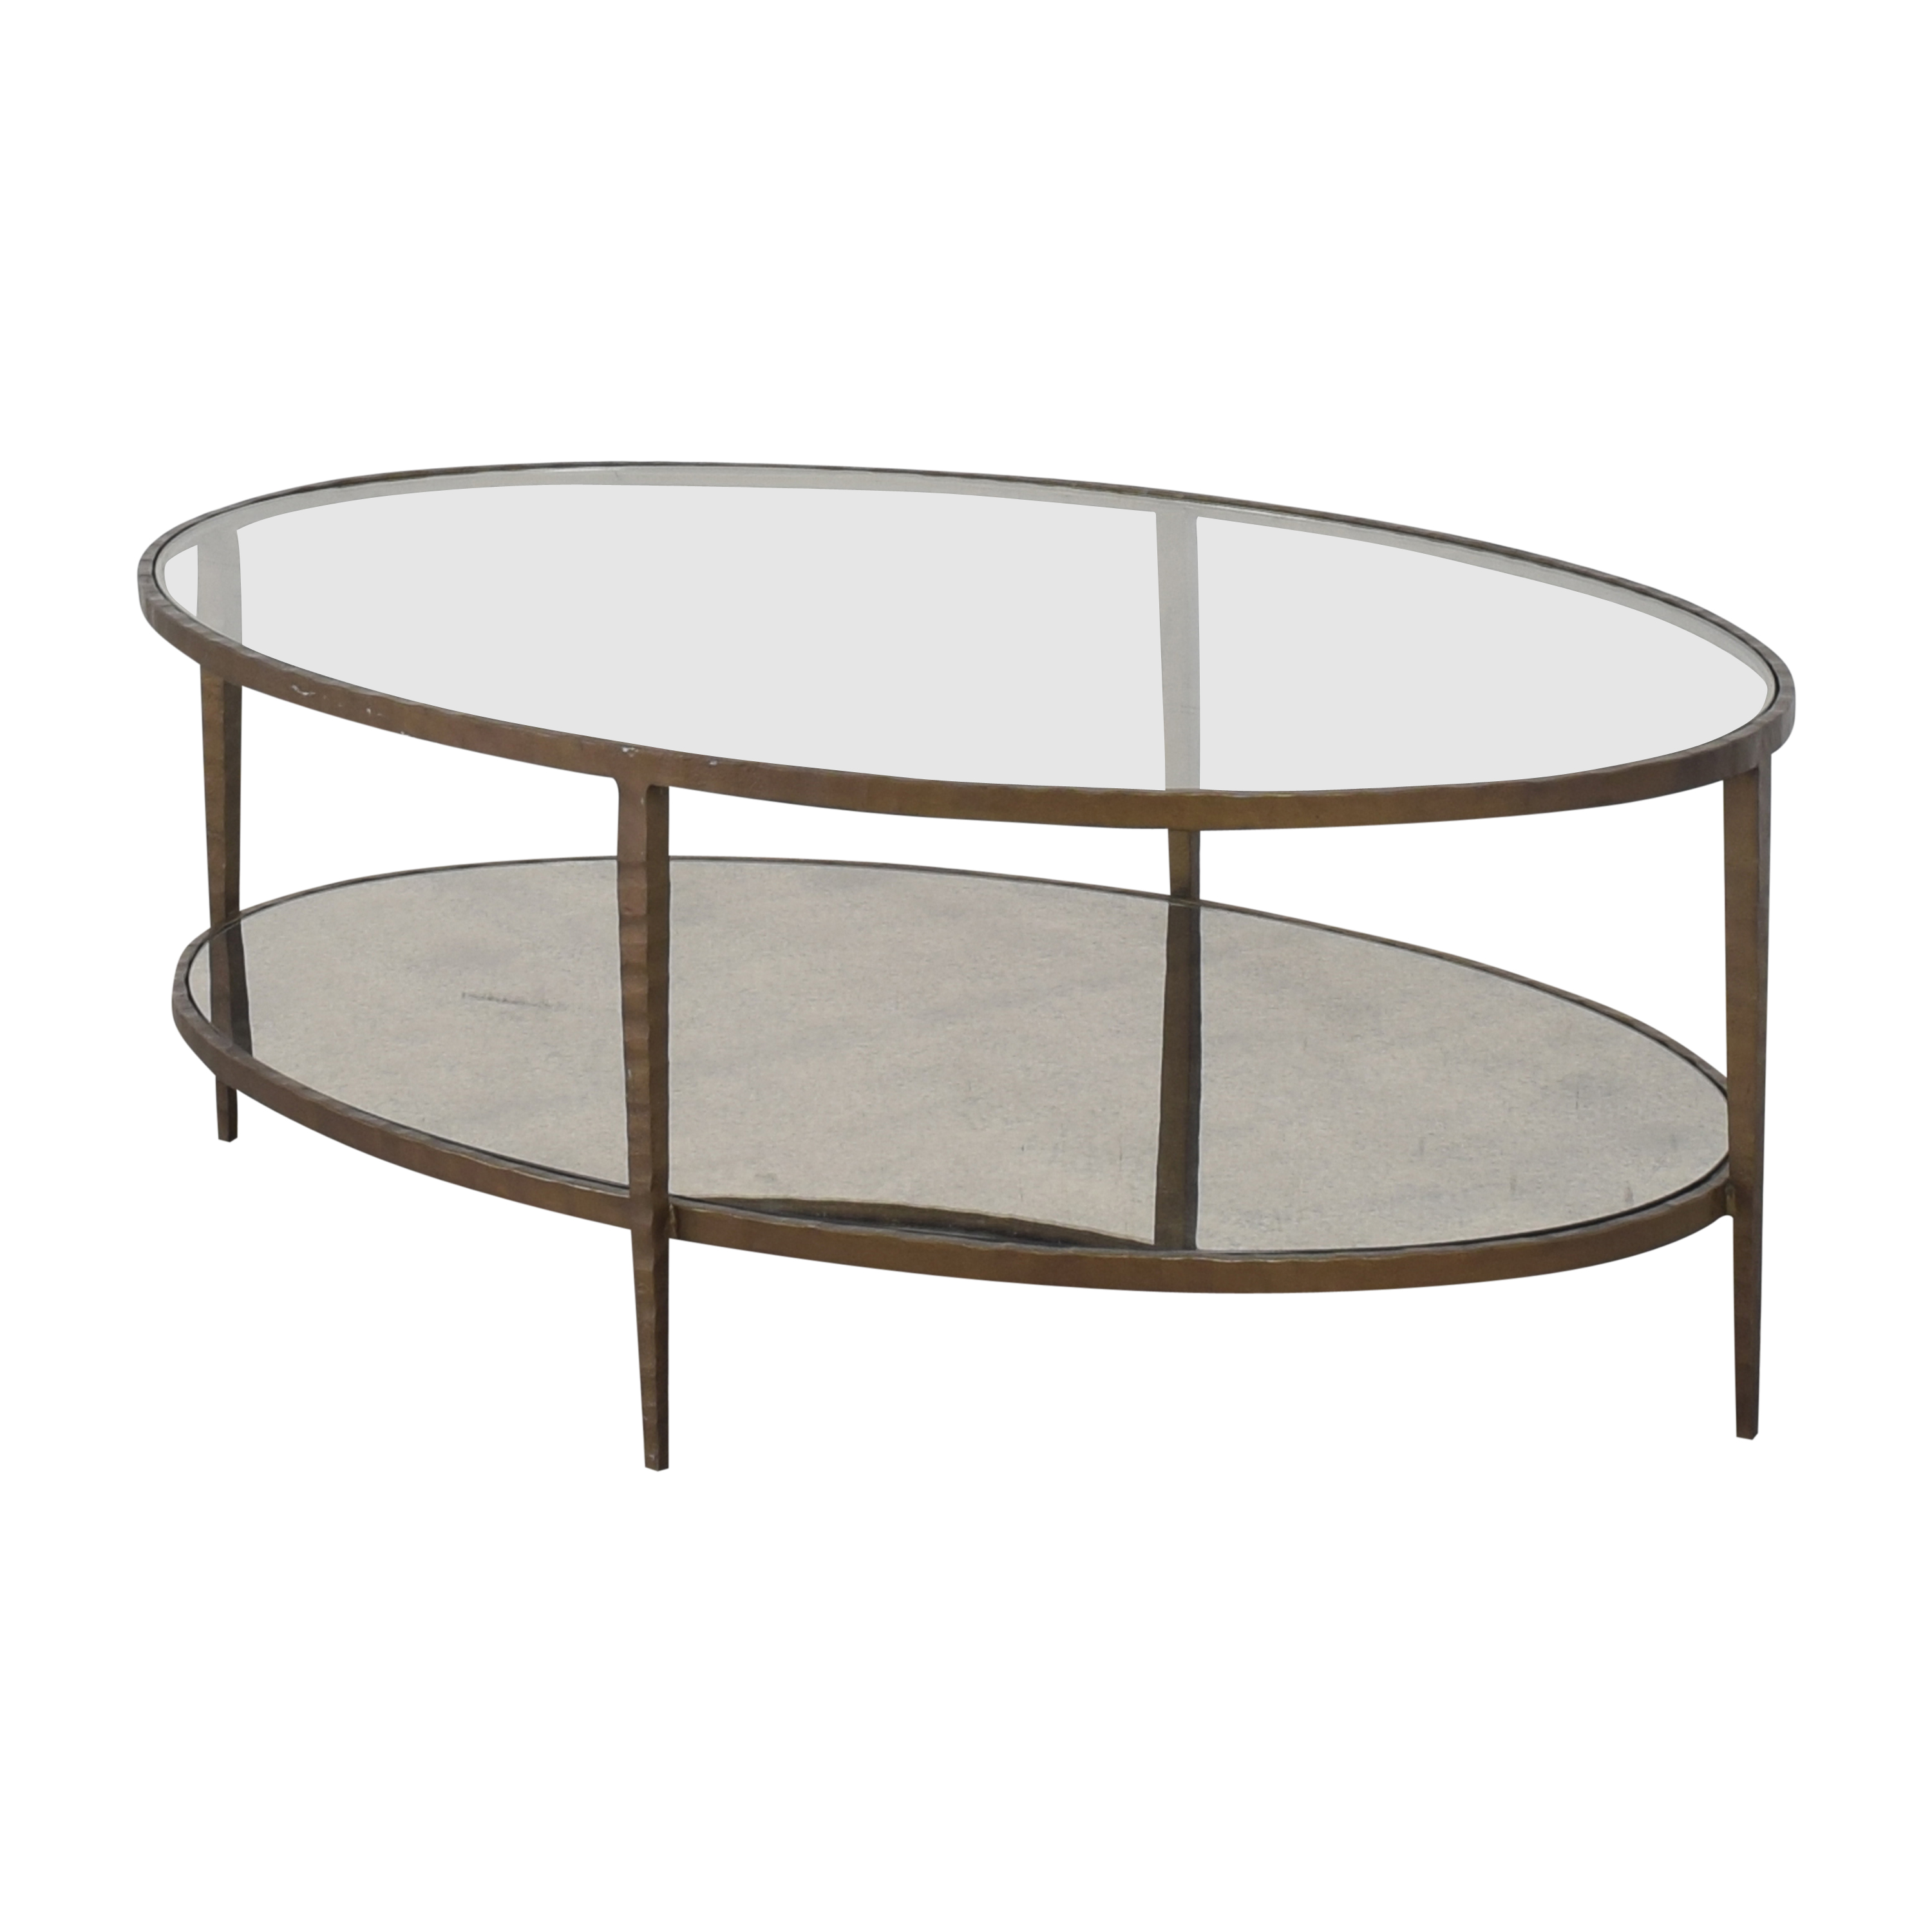 Crate & Barrel Crate & Barrel Clairemont Oval Coffee Table Coffee Tables